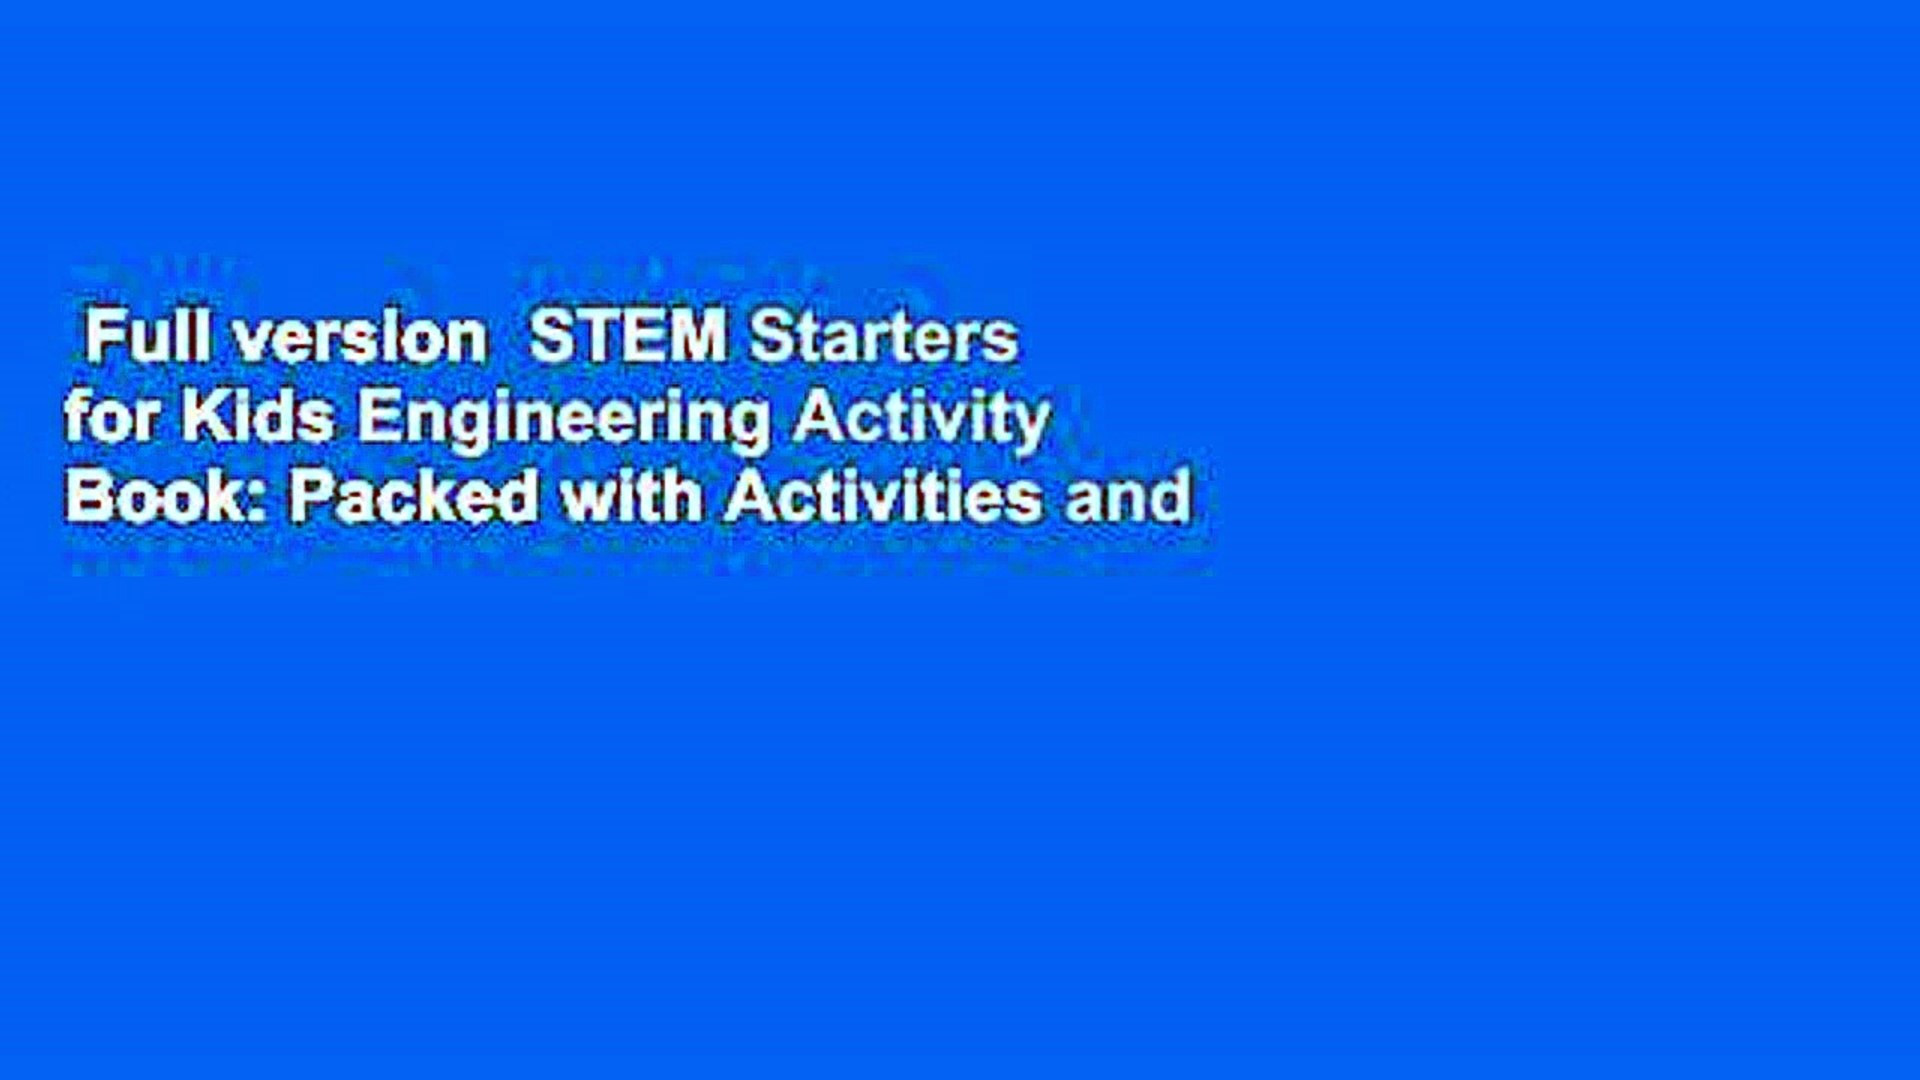 Full version  STEM Starters for Kids Engineering Activity Book: Packed with Activities and